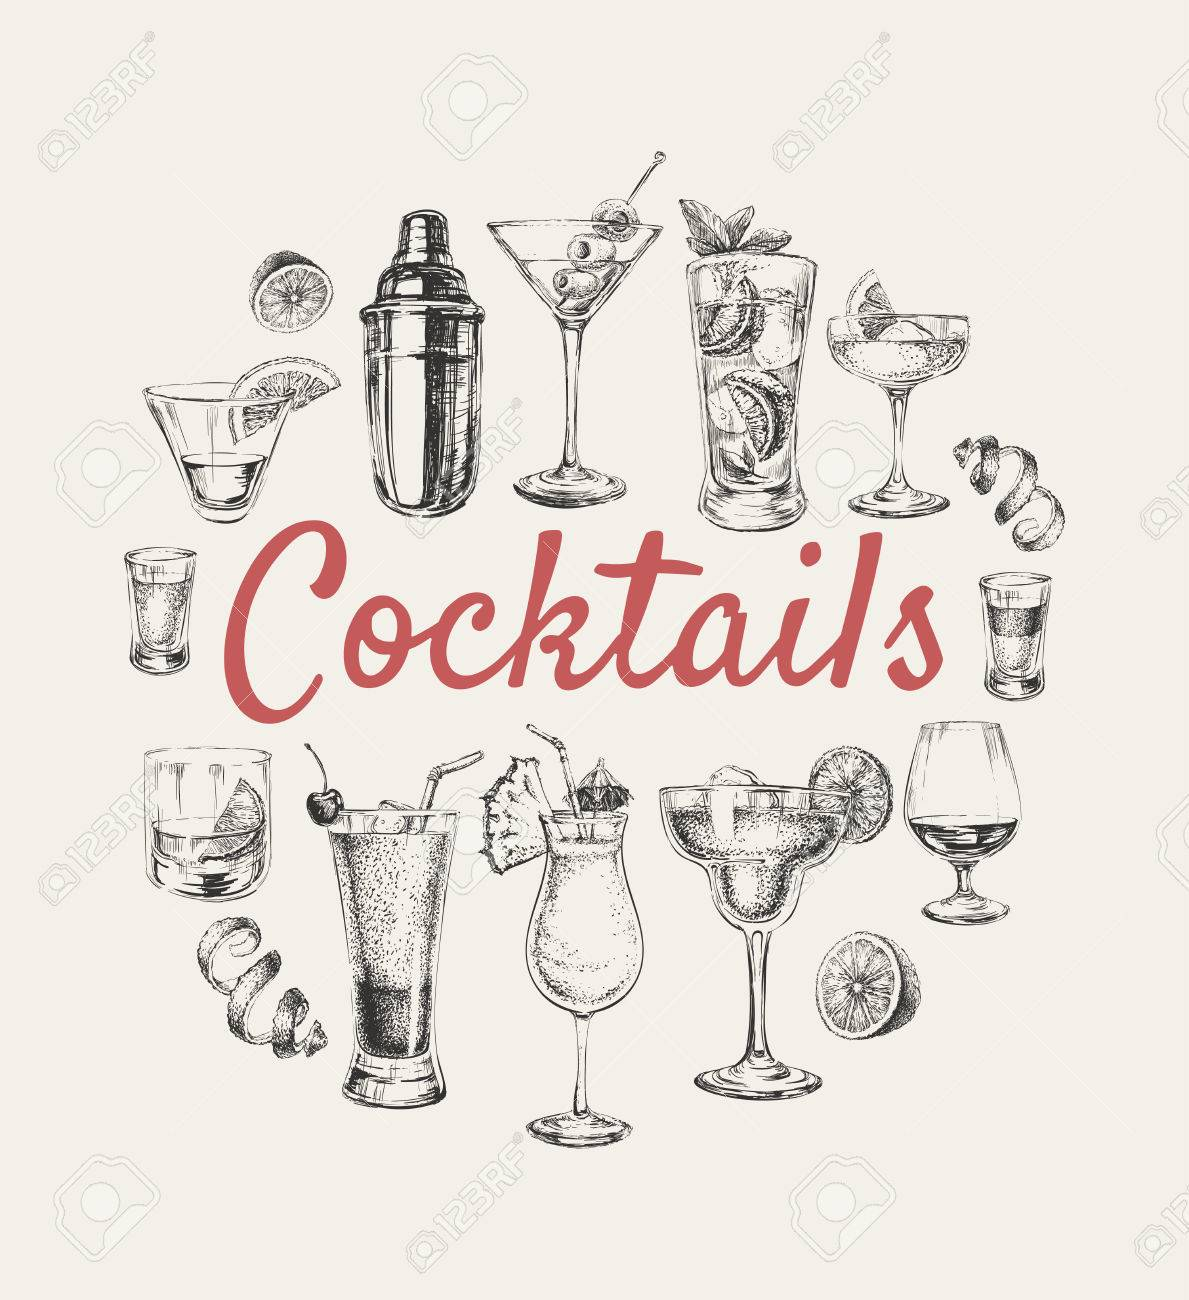 Set of sketch cocktails and alcohol drinks vector hand drawn illustration Set of sketch cocktails and alcohol drinks vector hand drawn illustration - 77839809